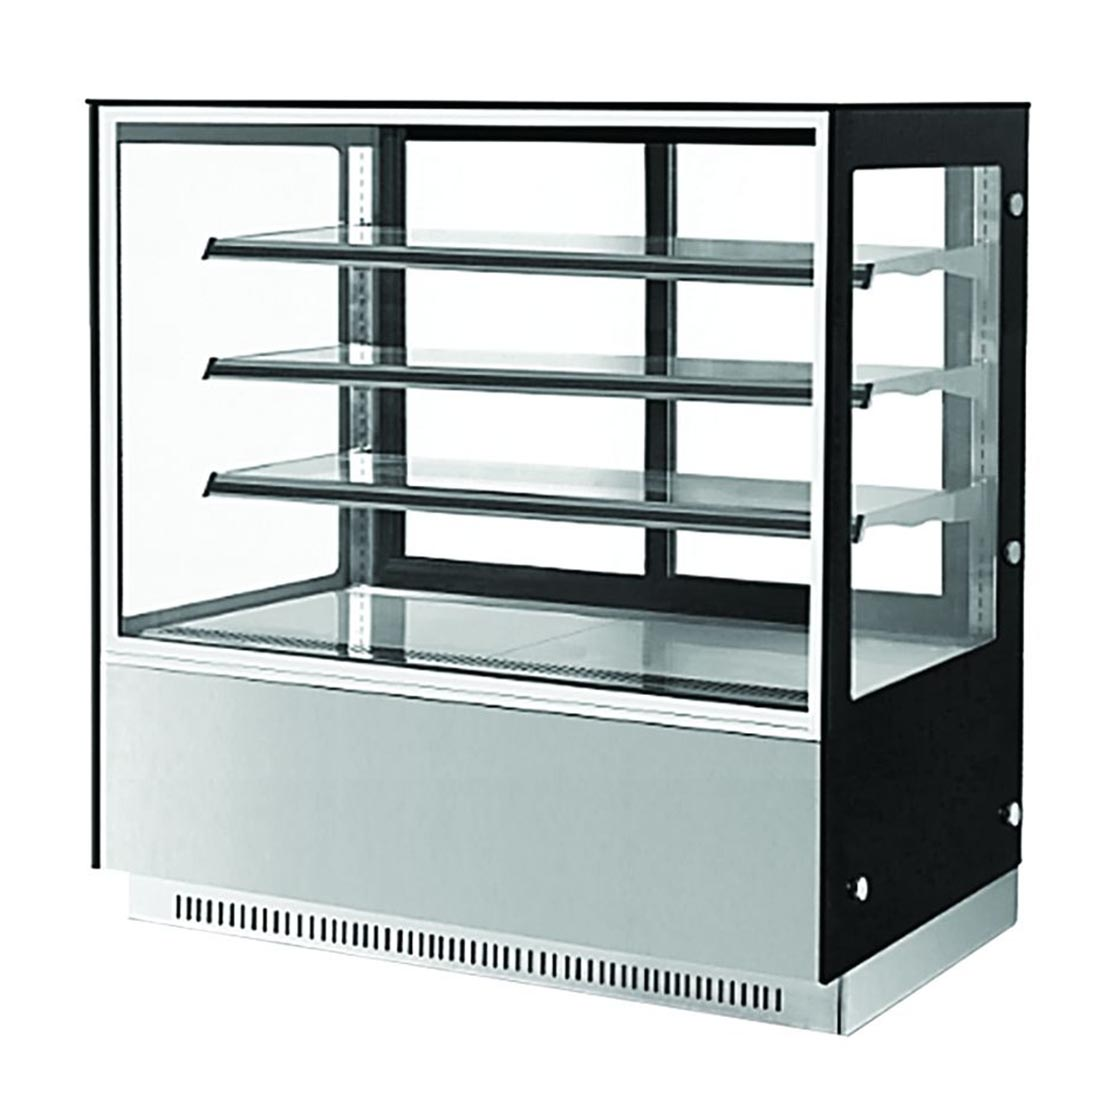 Modern 3 Shelves Cake or Food Display - GN-900RF3